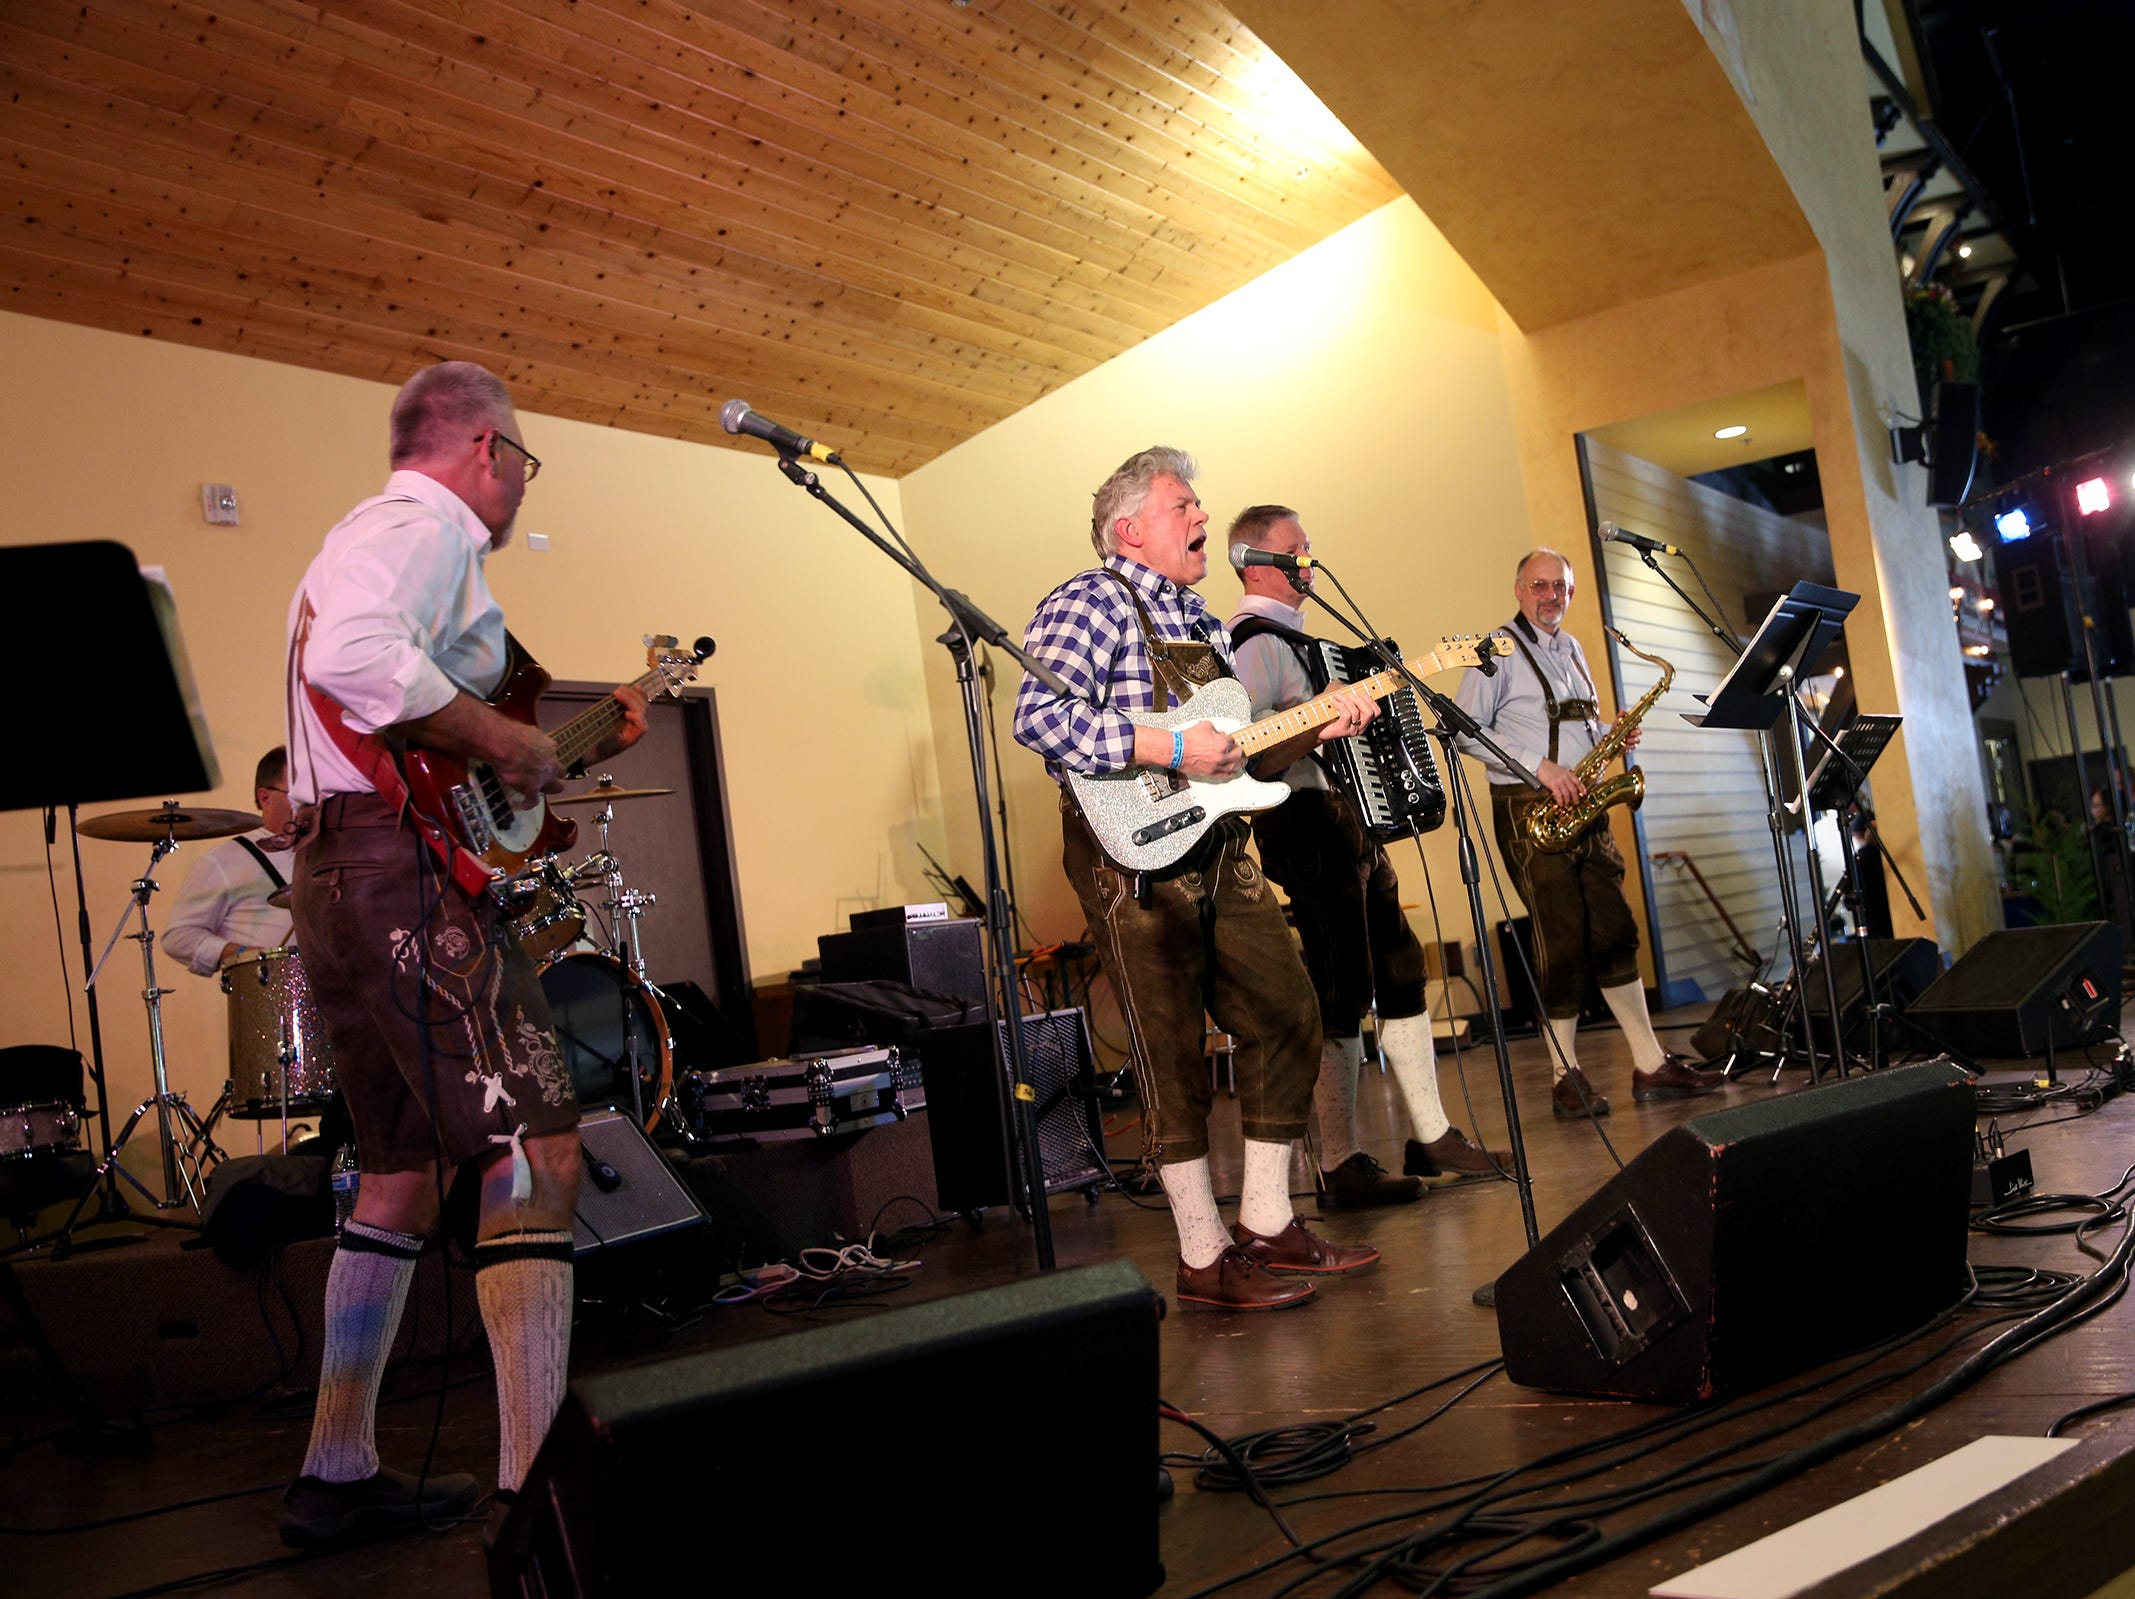 Doppelbock performs at Volksfest in Mt. Angel on Saturday, March 2, 2019. The festival celebrates Mt. Angel's heritage with food, live German music, dancing, games and demonstrations.